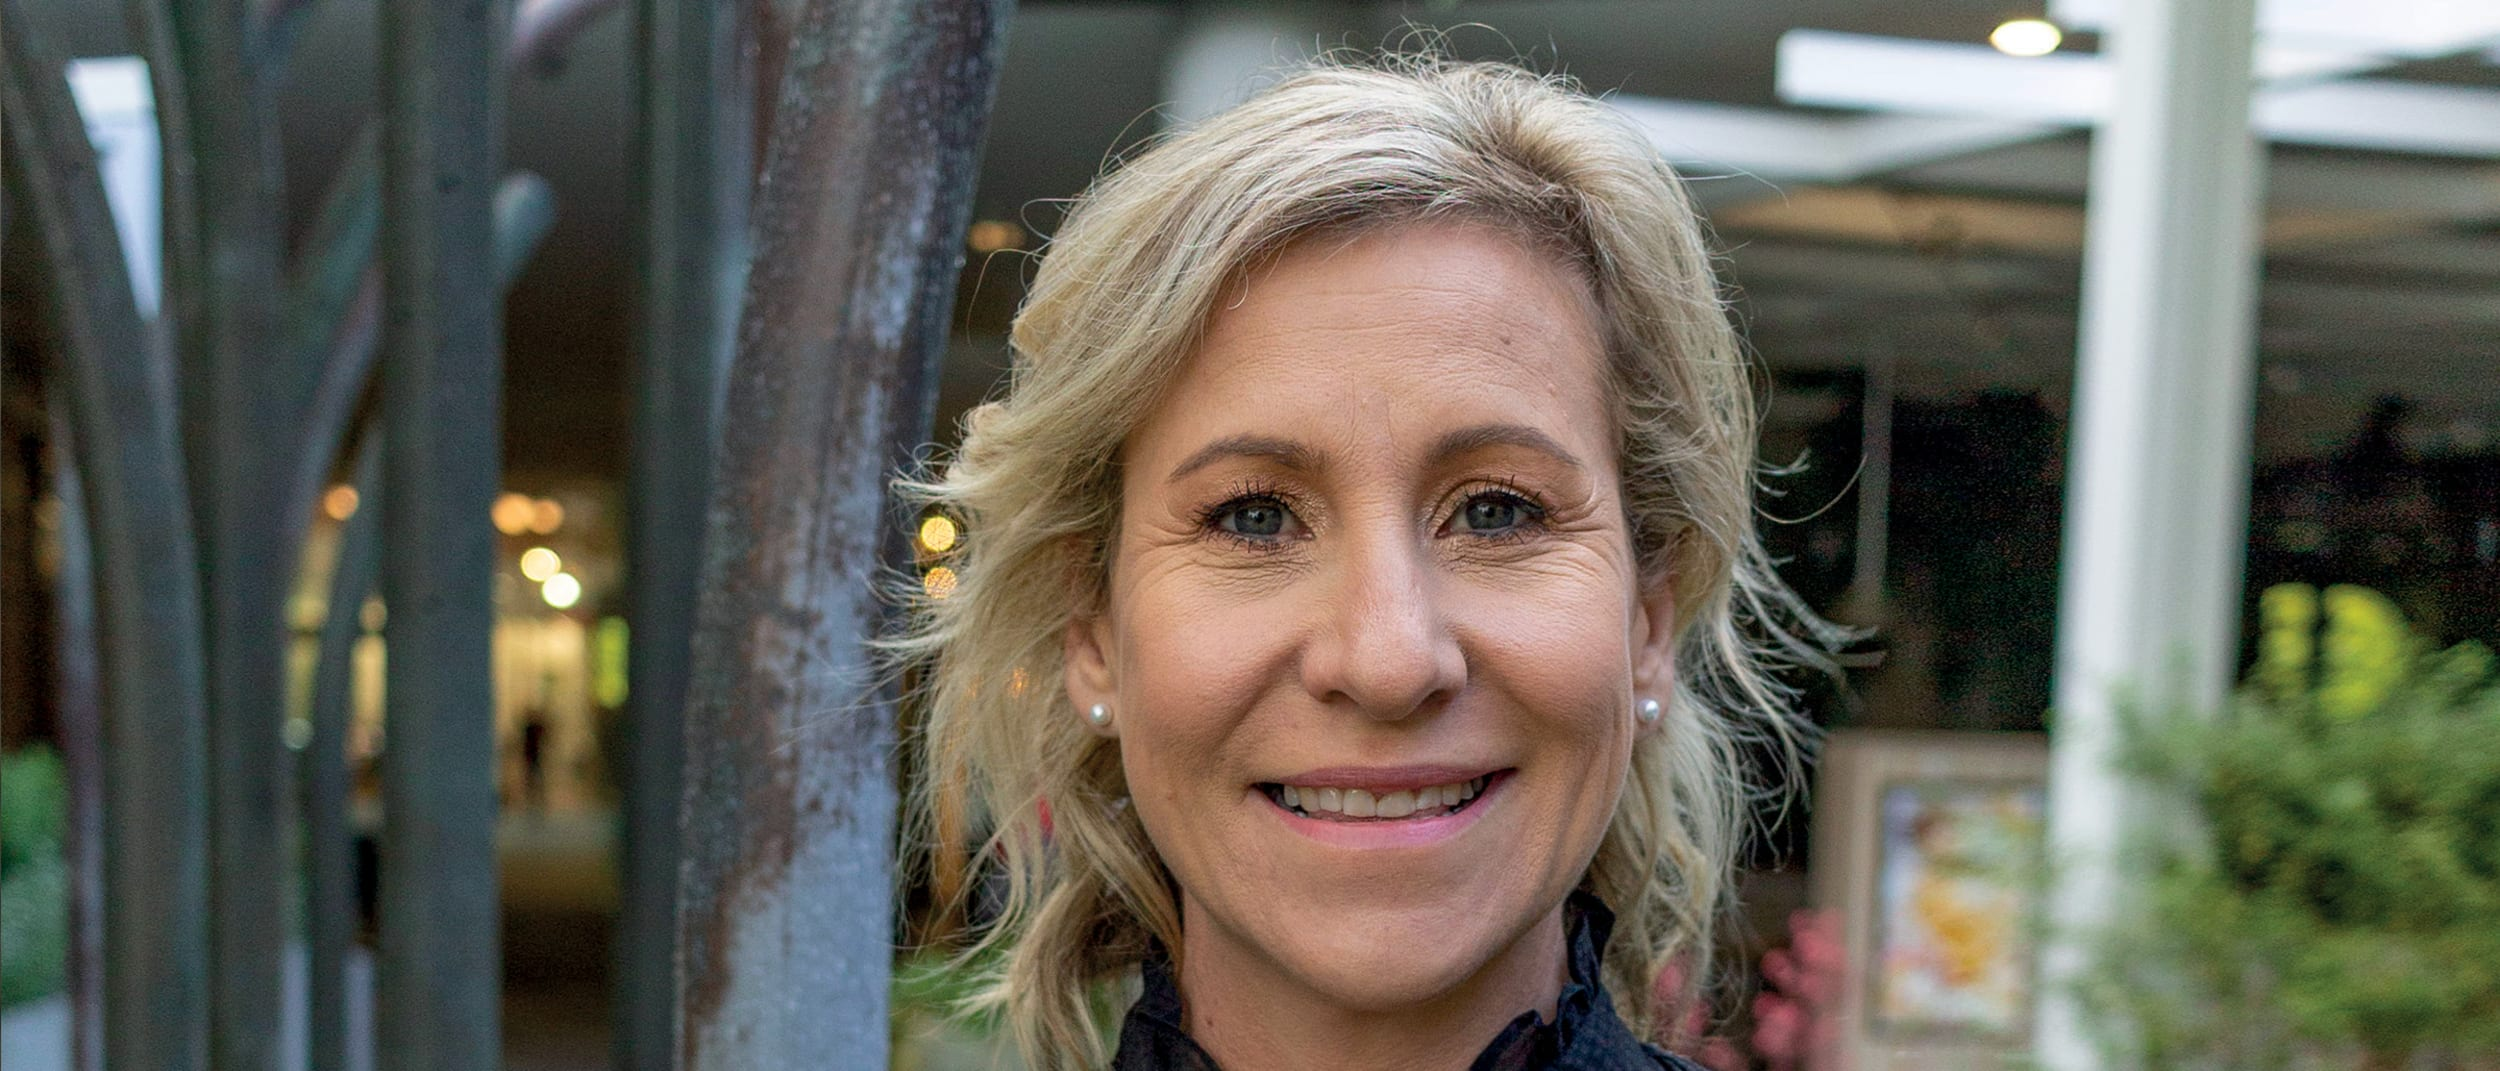 Janine Wood: No Limits Perth: Westfield Local Heroes 2019